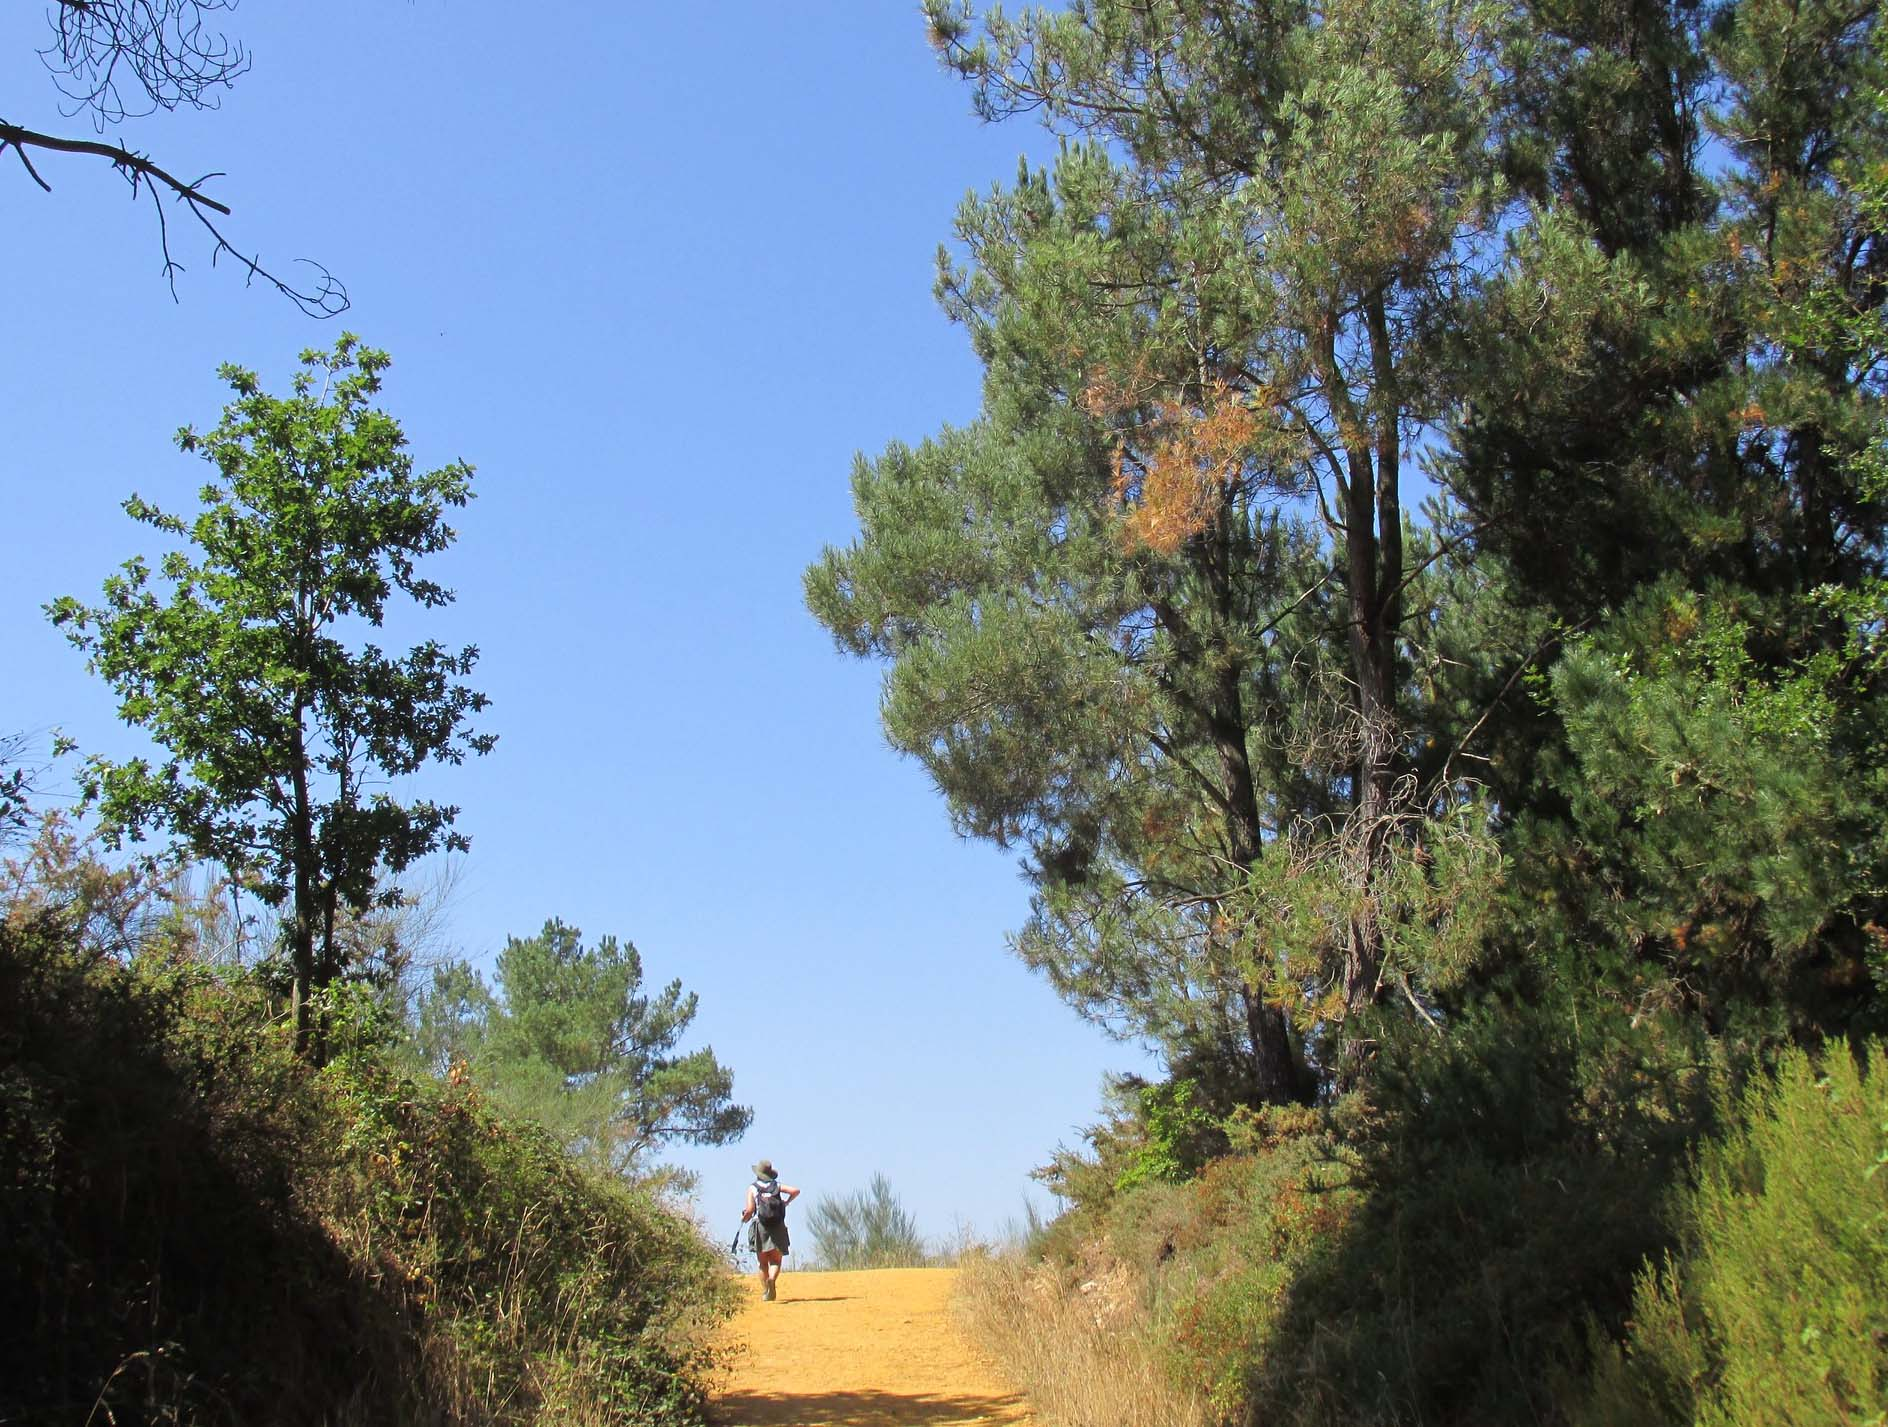 Camino de Santiago Tour - August 26, 2019